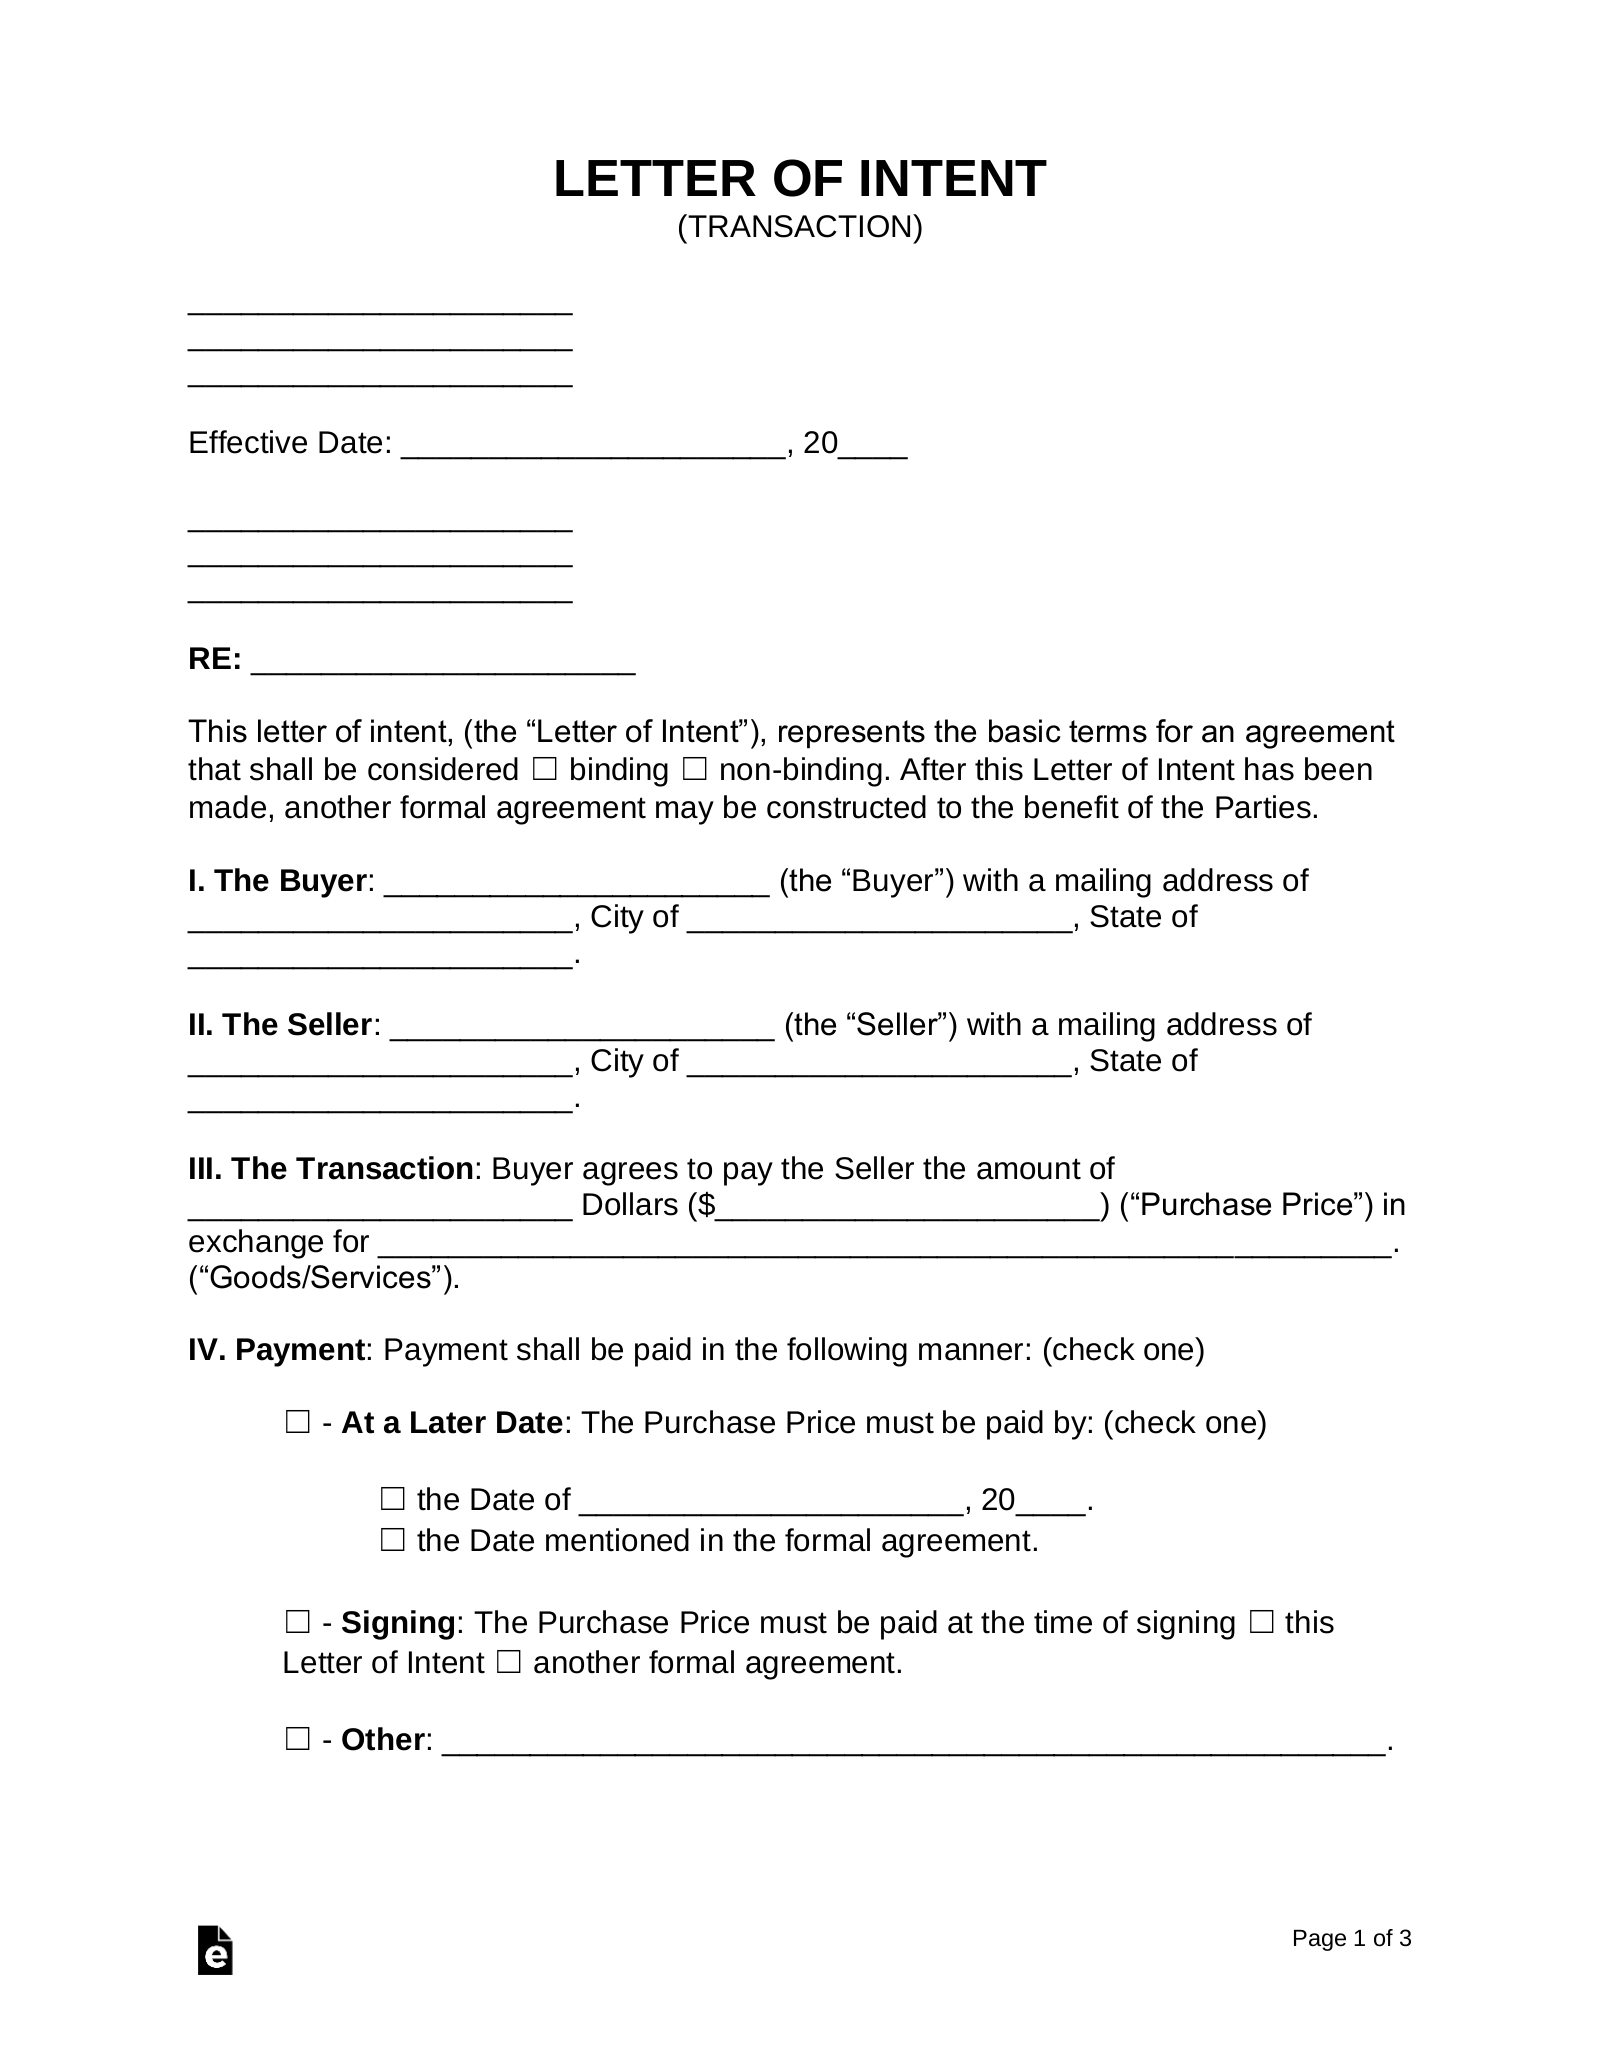 Free Letter of Intent (LOI) Template - Word  PDF – eForms